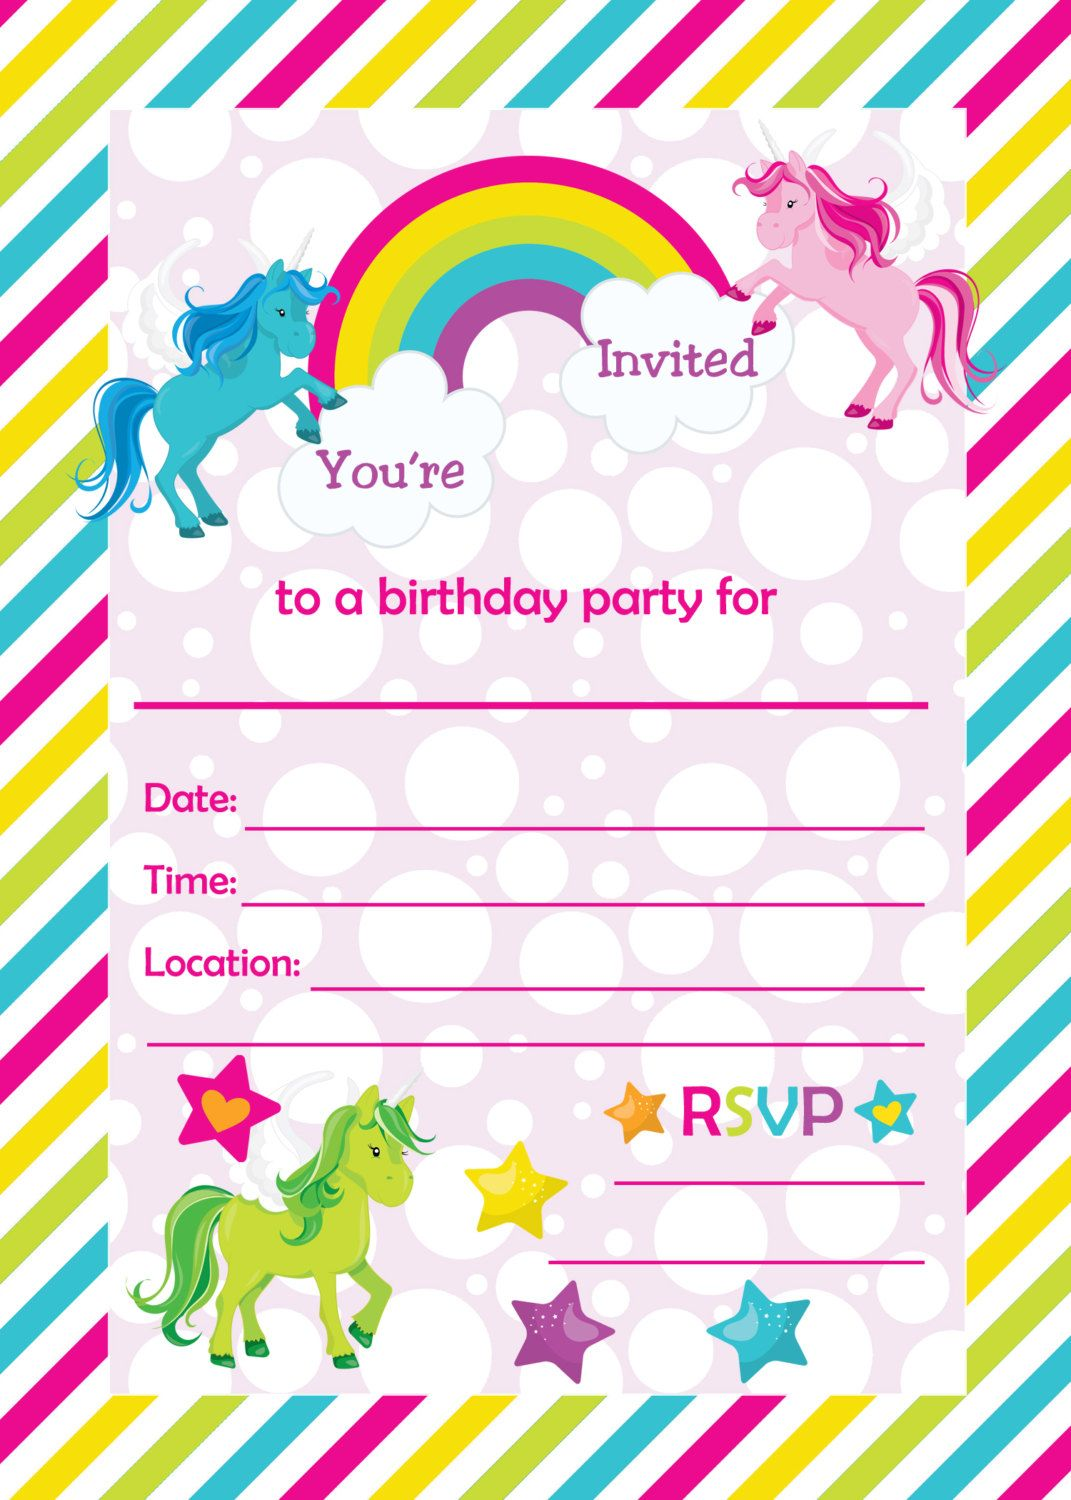 fill in birthday party invitations printable rainbows and, party invitations